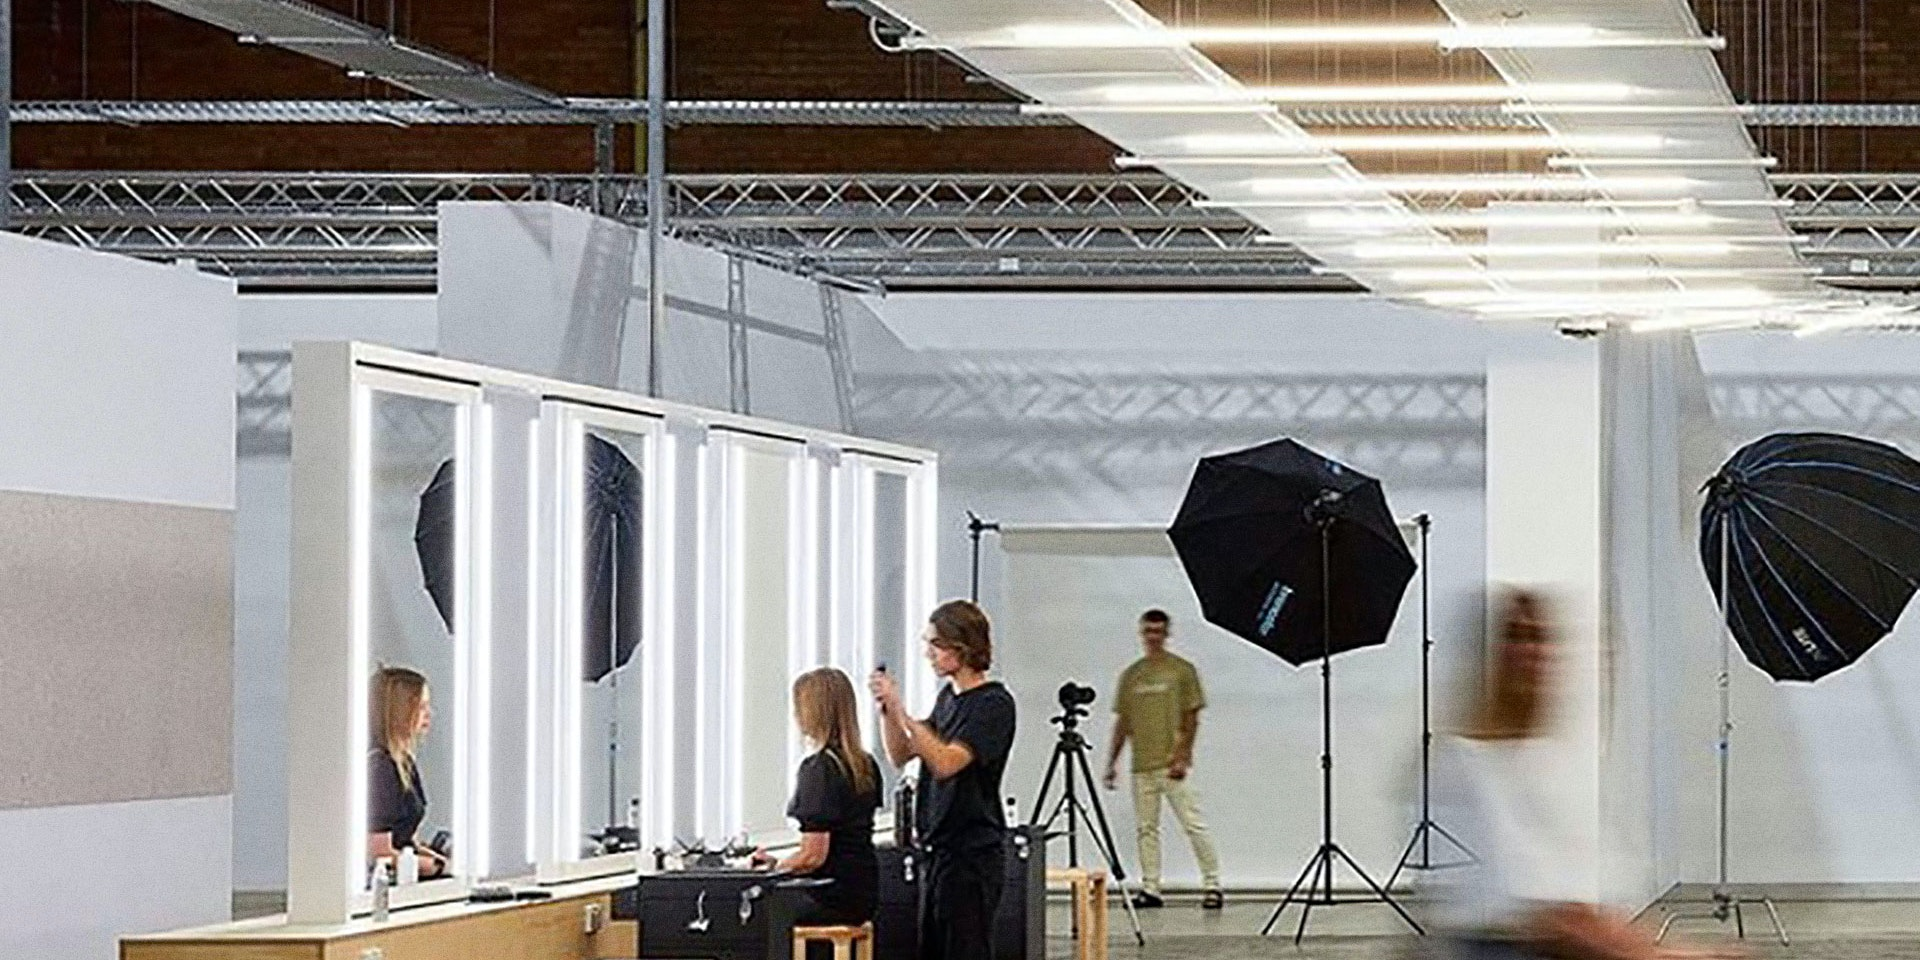 Multo  compact LED strip in application, installed in a photo studio.